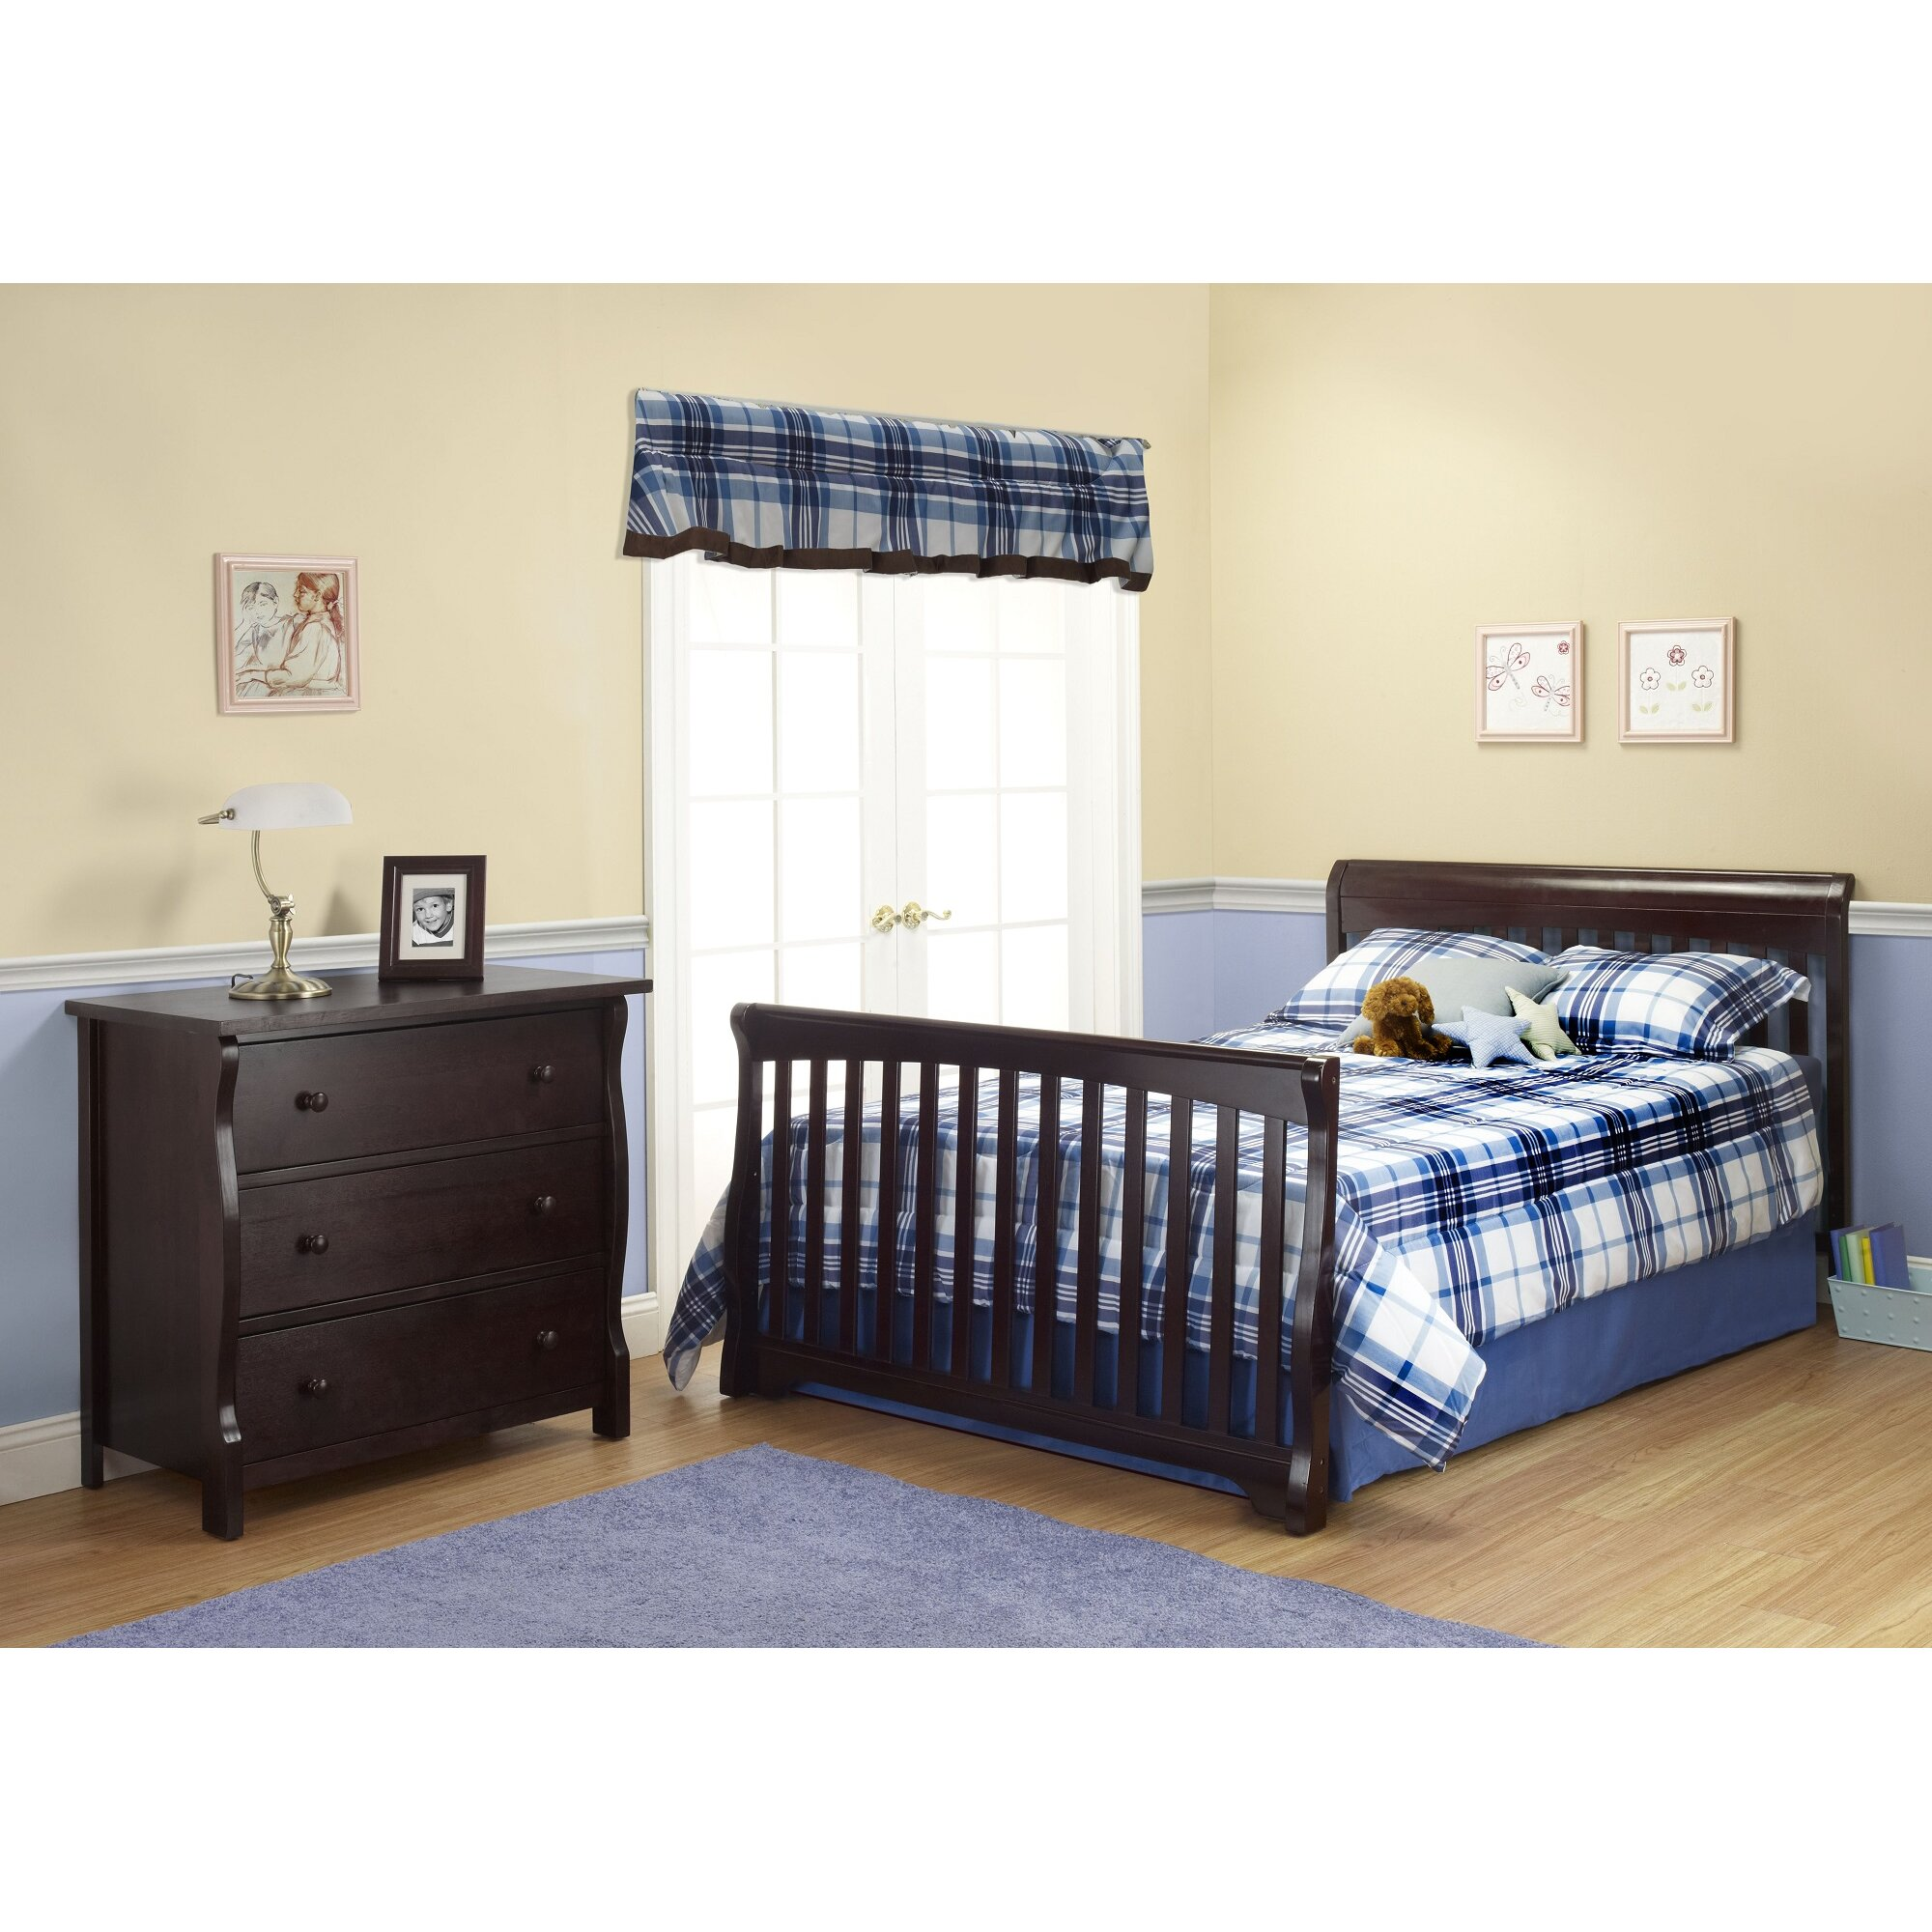 Sorelle Vista Elite Crib And Changer Instructions